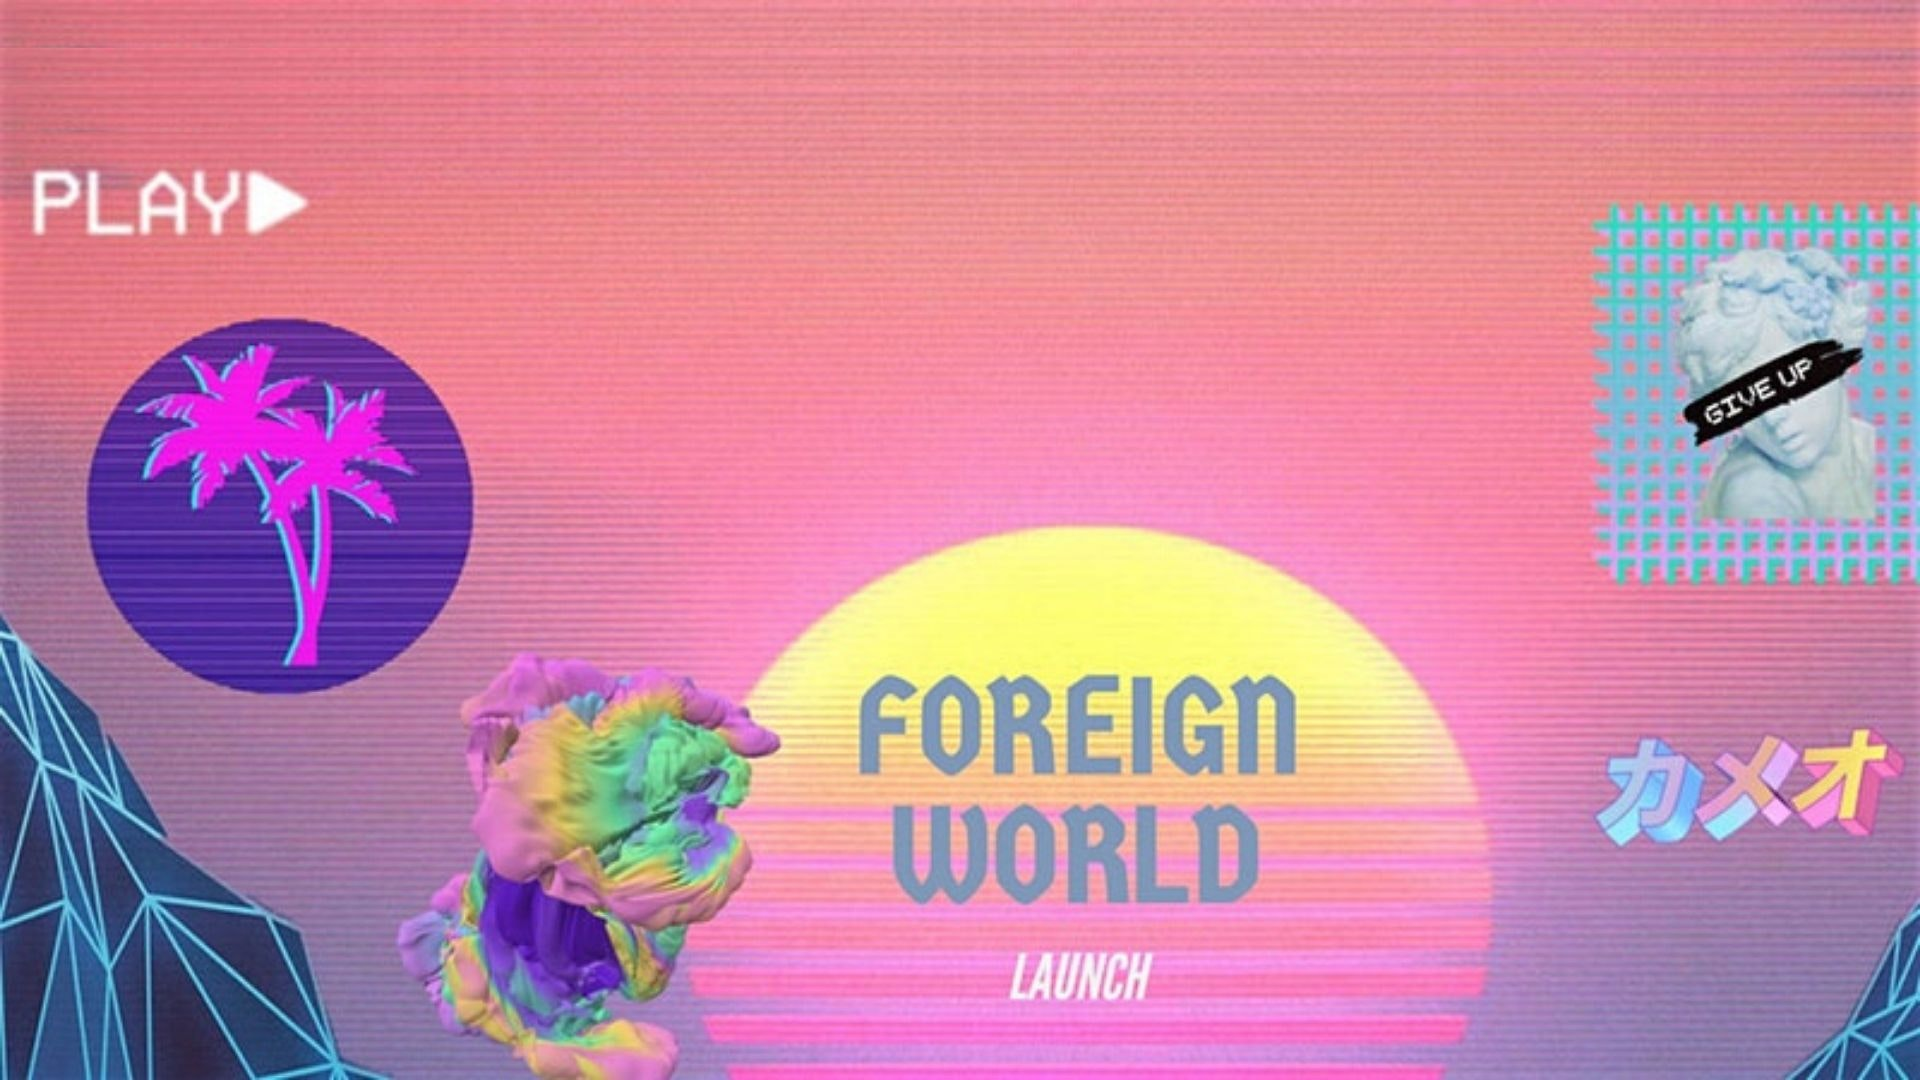 Foreign World